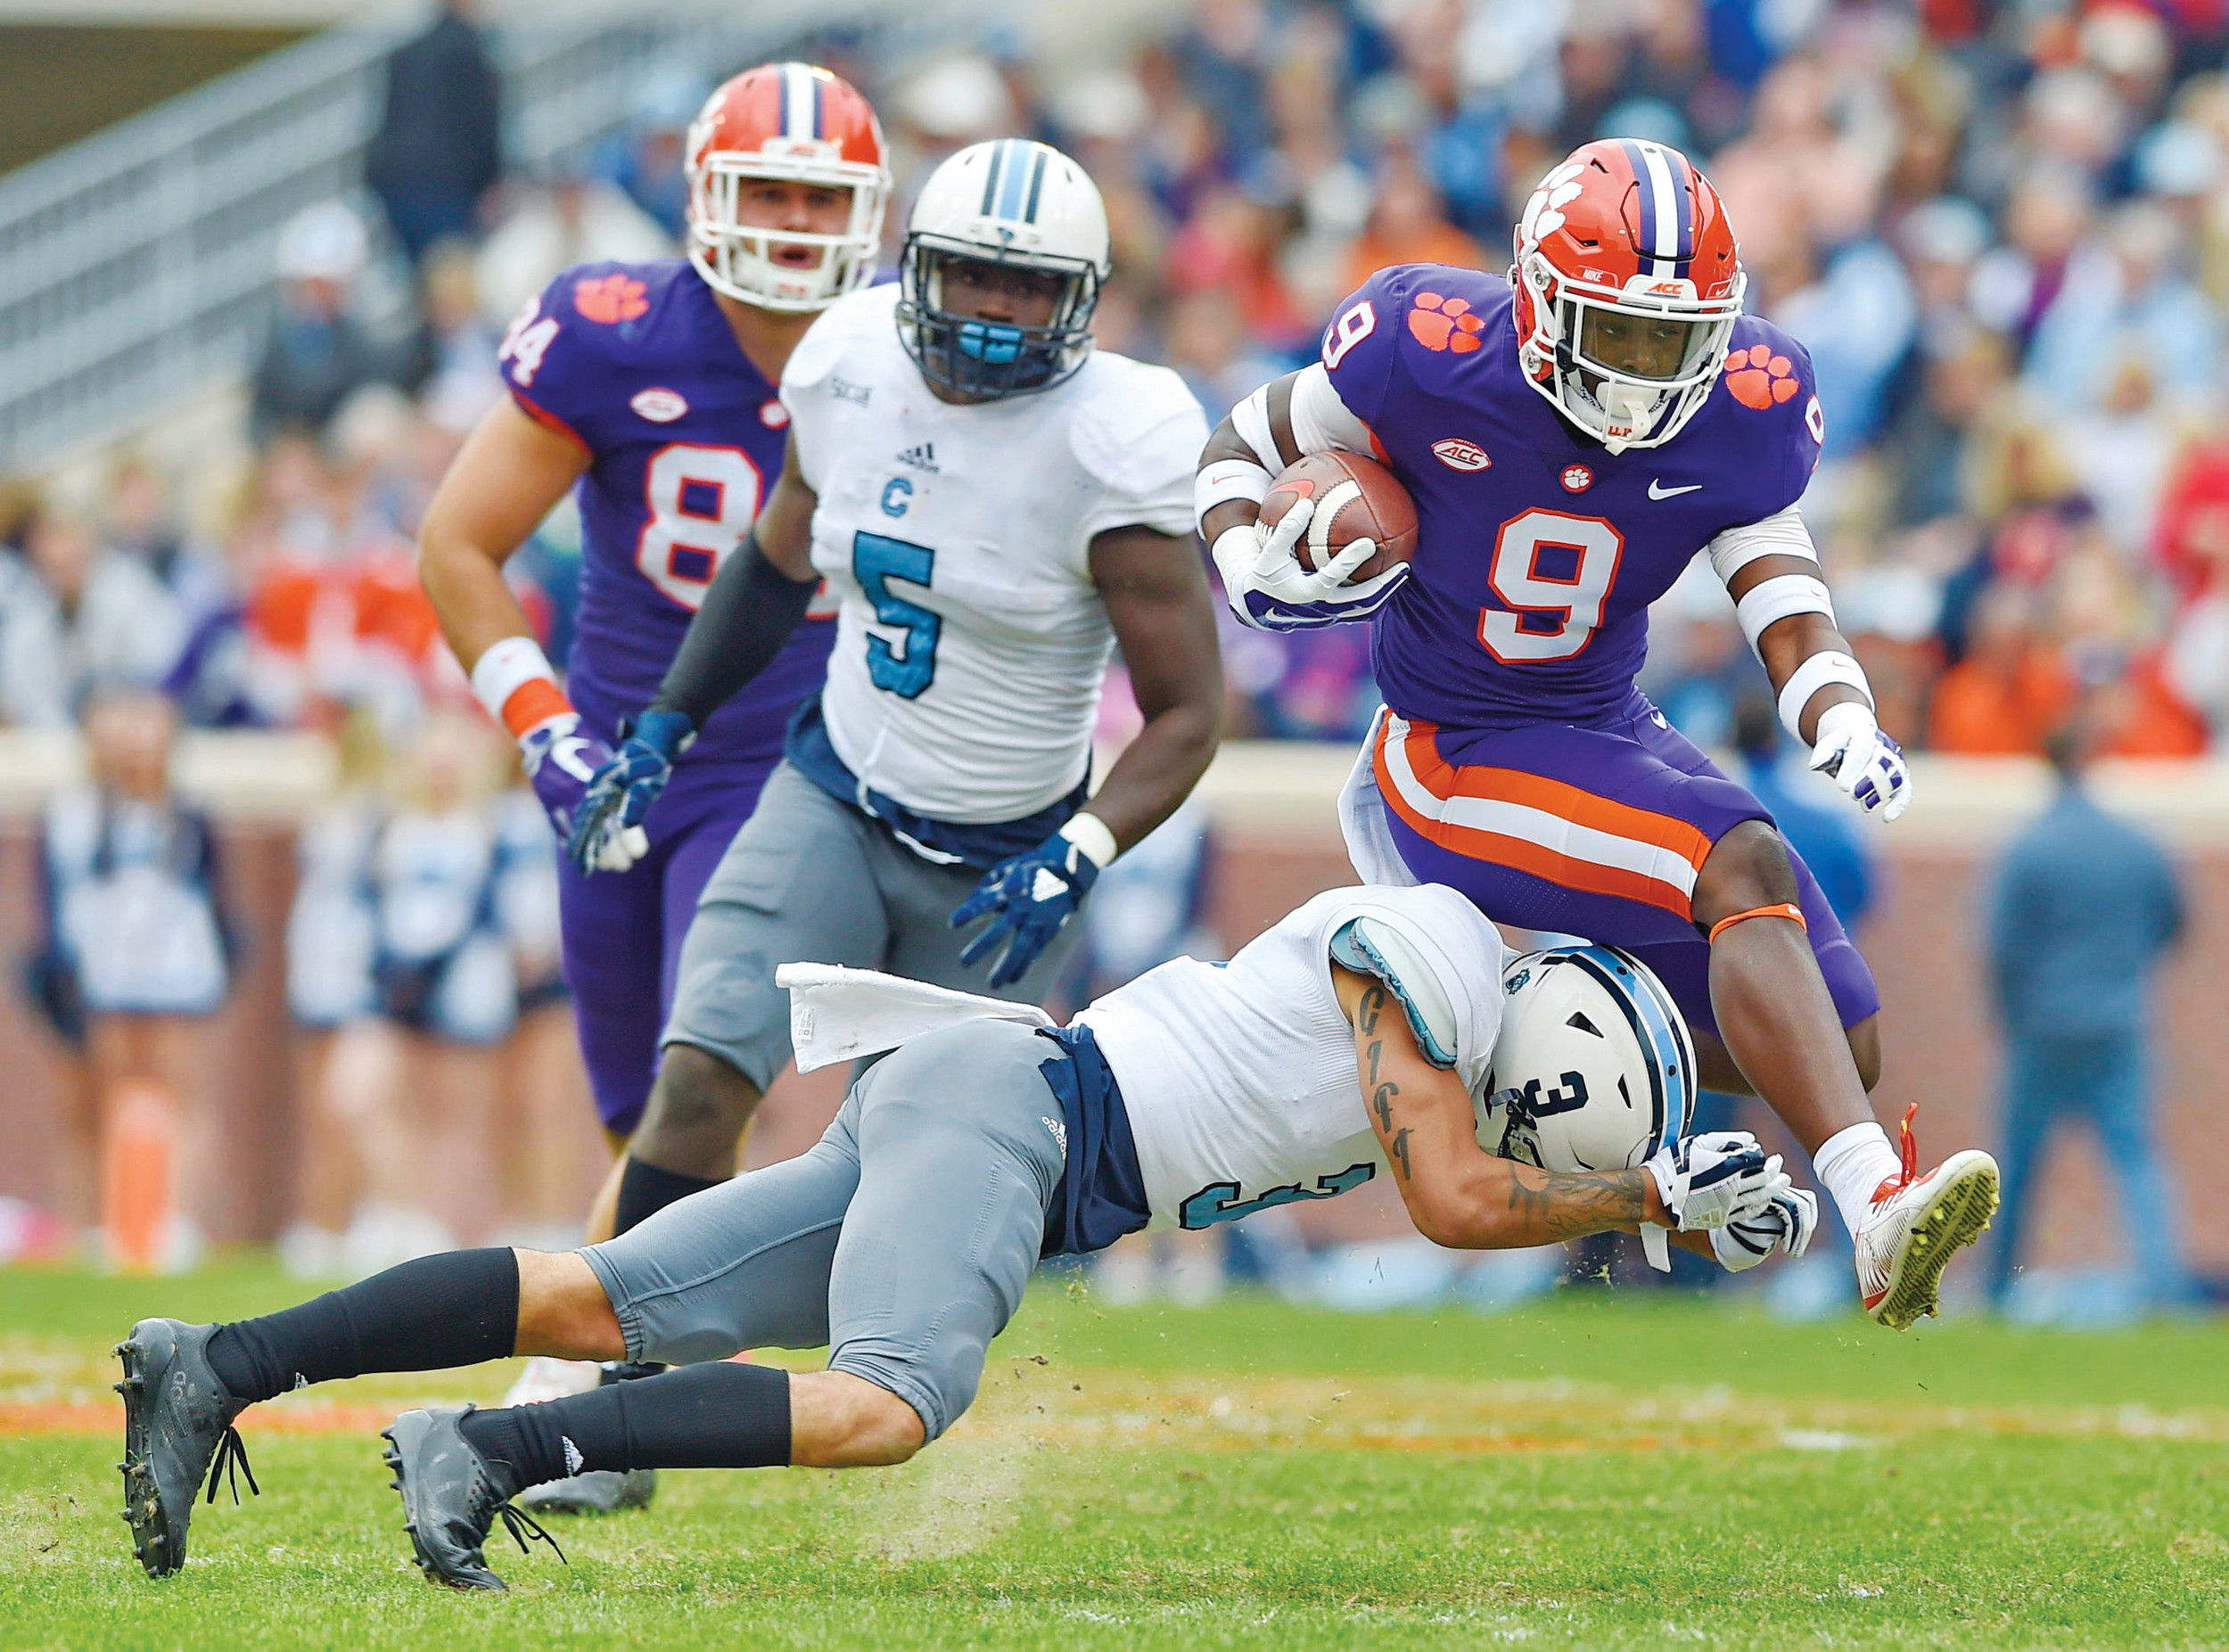 Clemson's Travis Etienne (9) bounds over Citadel's Wally Wilmore to gain a first down during the first half of the Tigers' 61-3 victory over the Bulldogs on Saturday in Clemson.